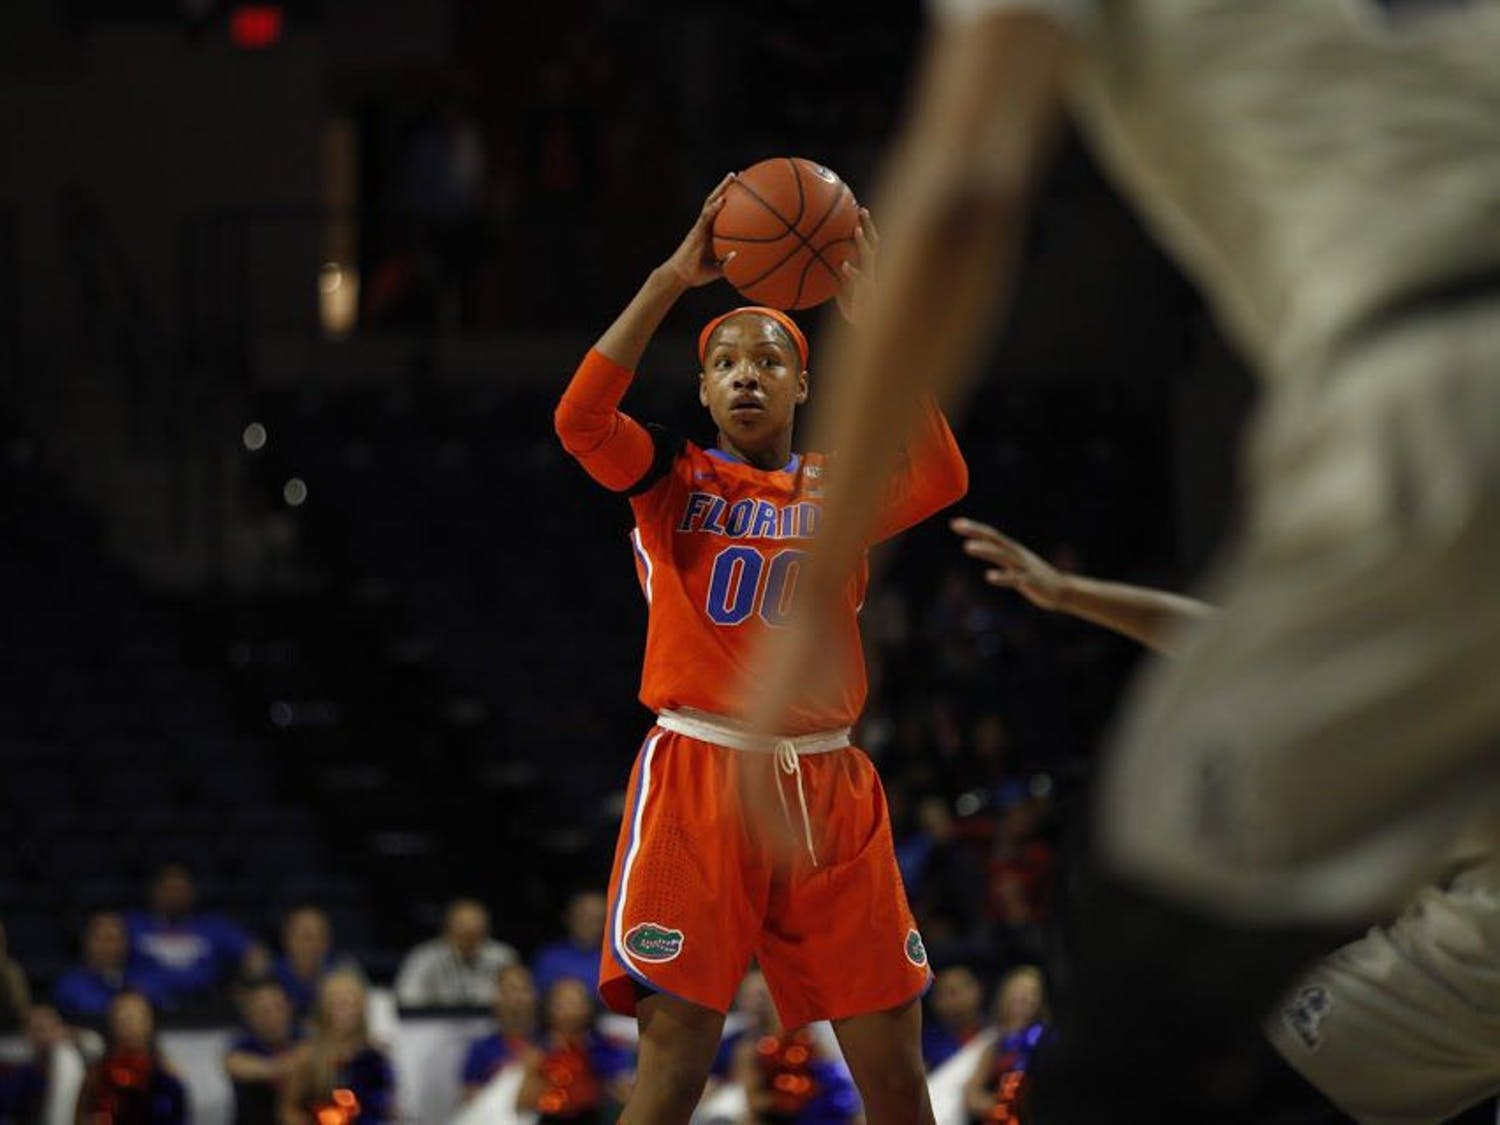 UF guard Delicia Washington looks to pass during Florida's 84-75 loss to Ole Miss on Feb. 6, 2017, in the O'Connell Center.